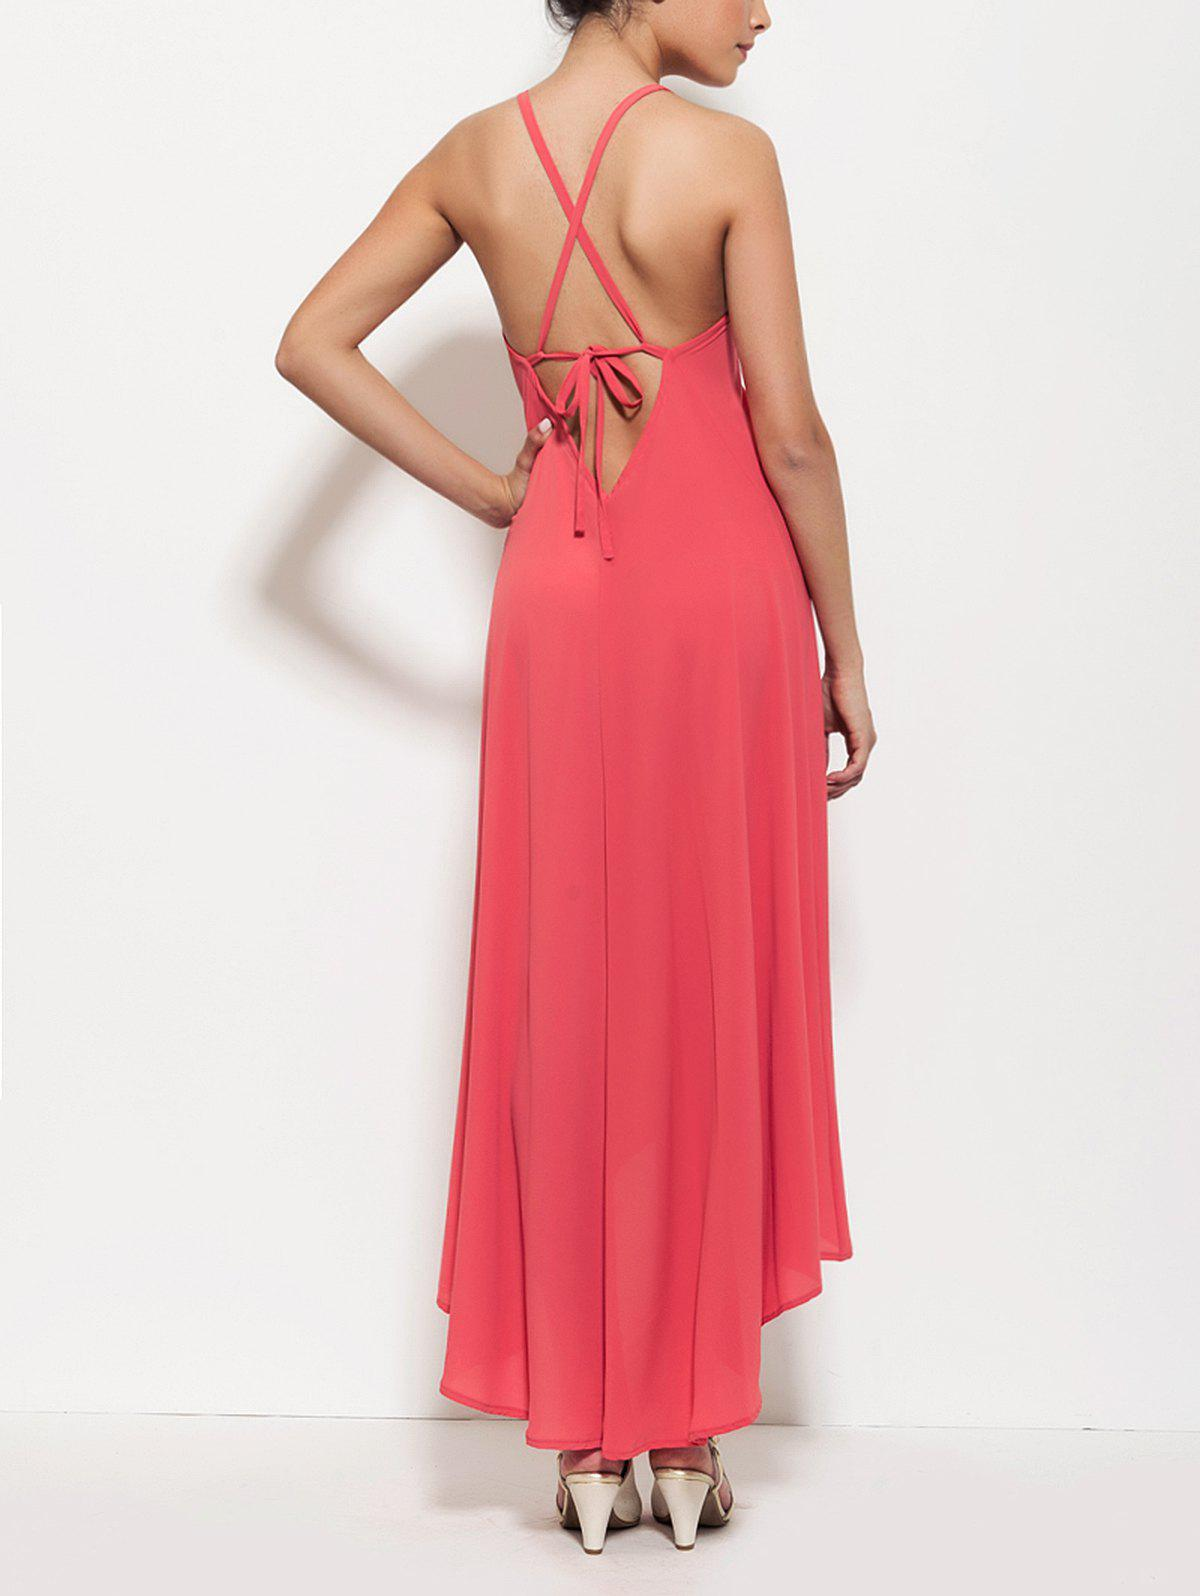 Rose Red Spaghetti Strap High Low Lace Up Backless Maxi